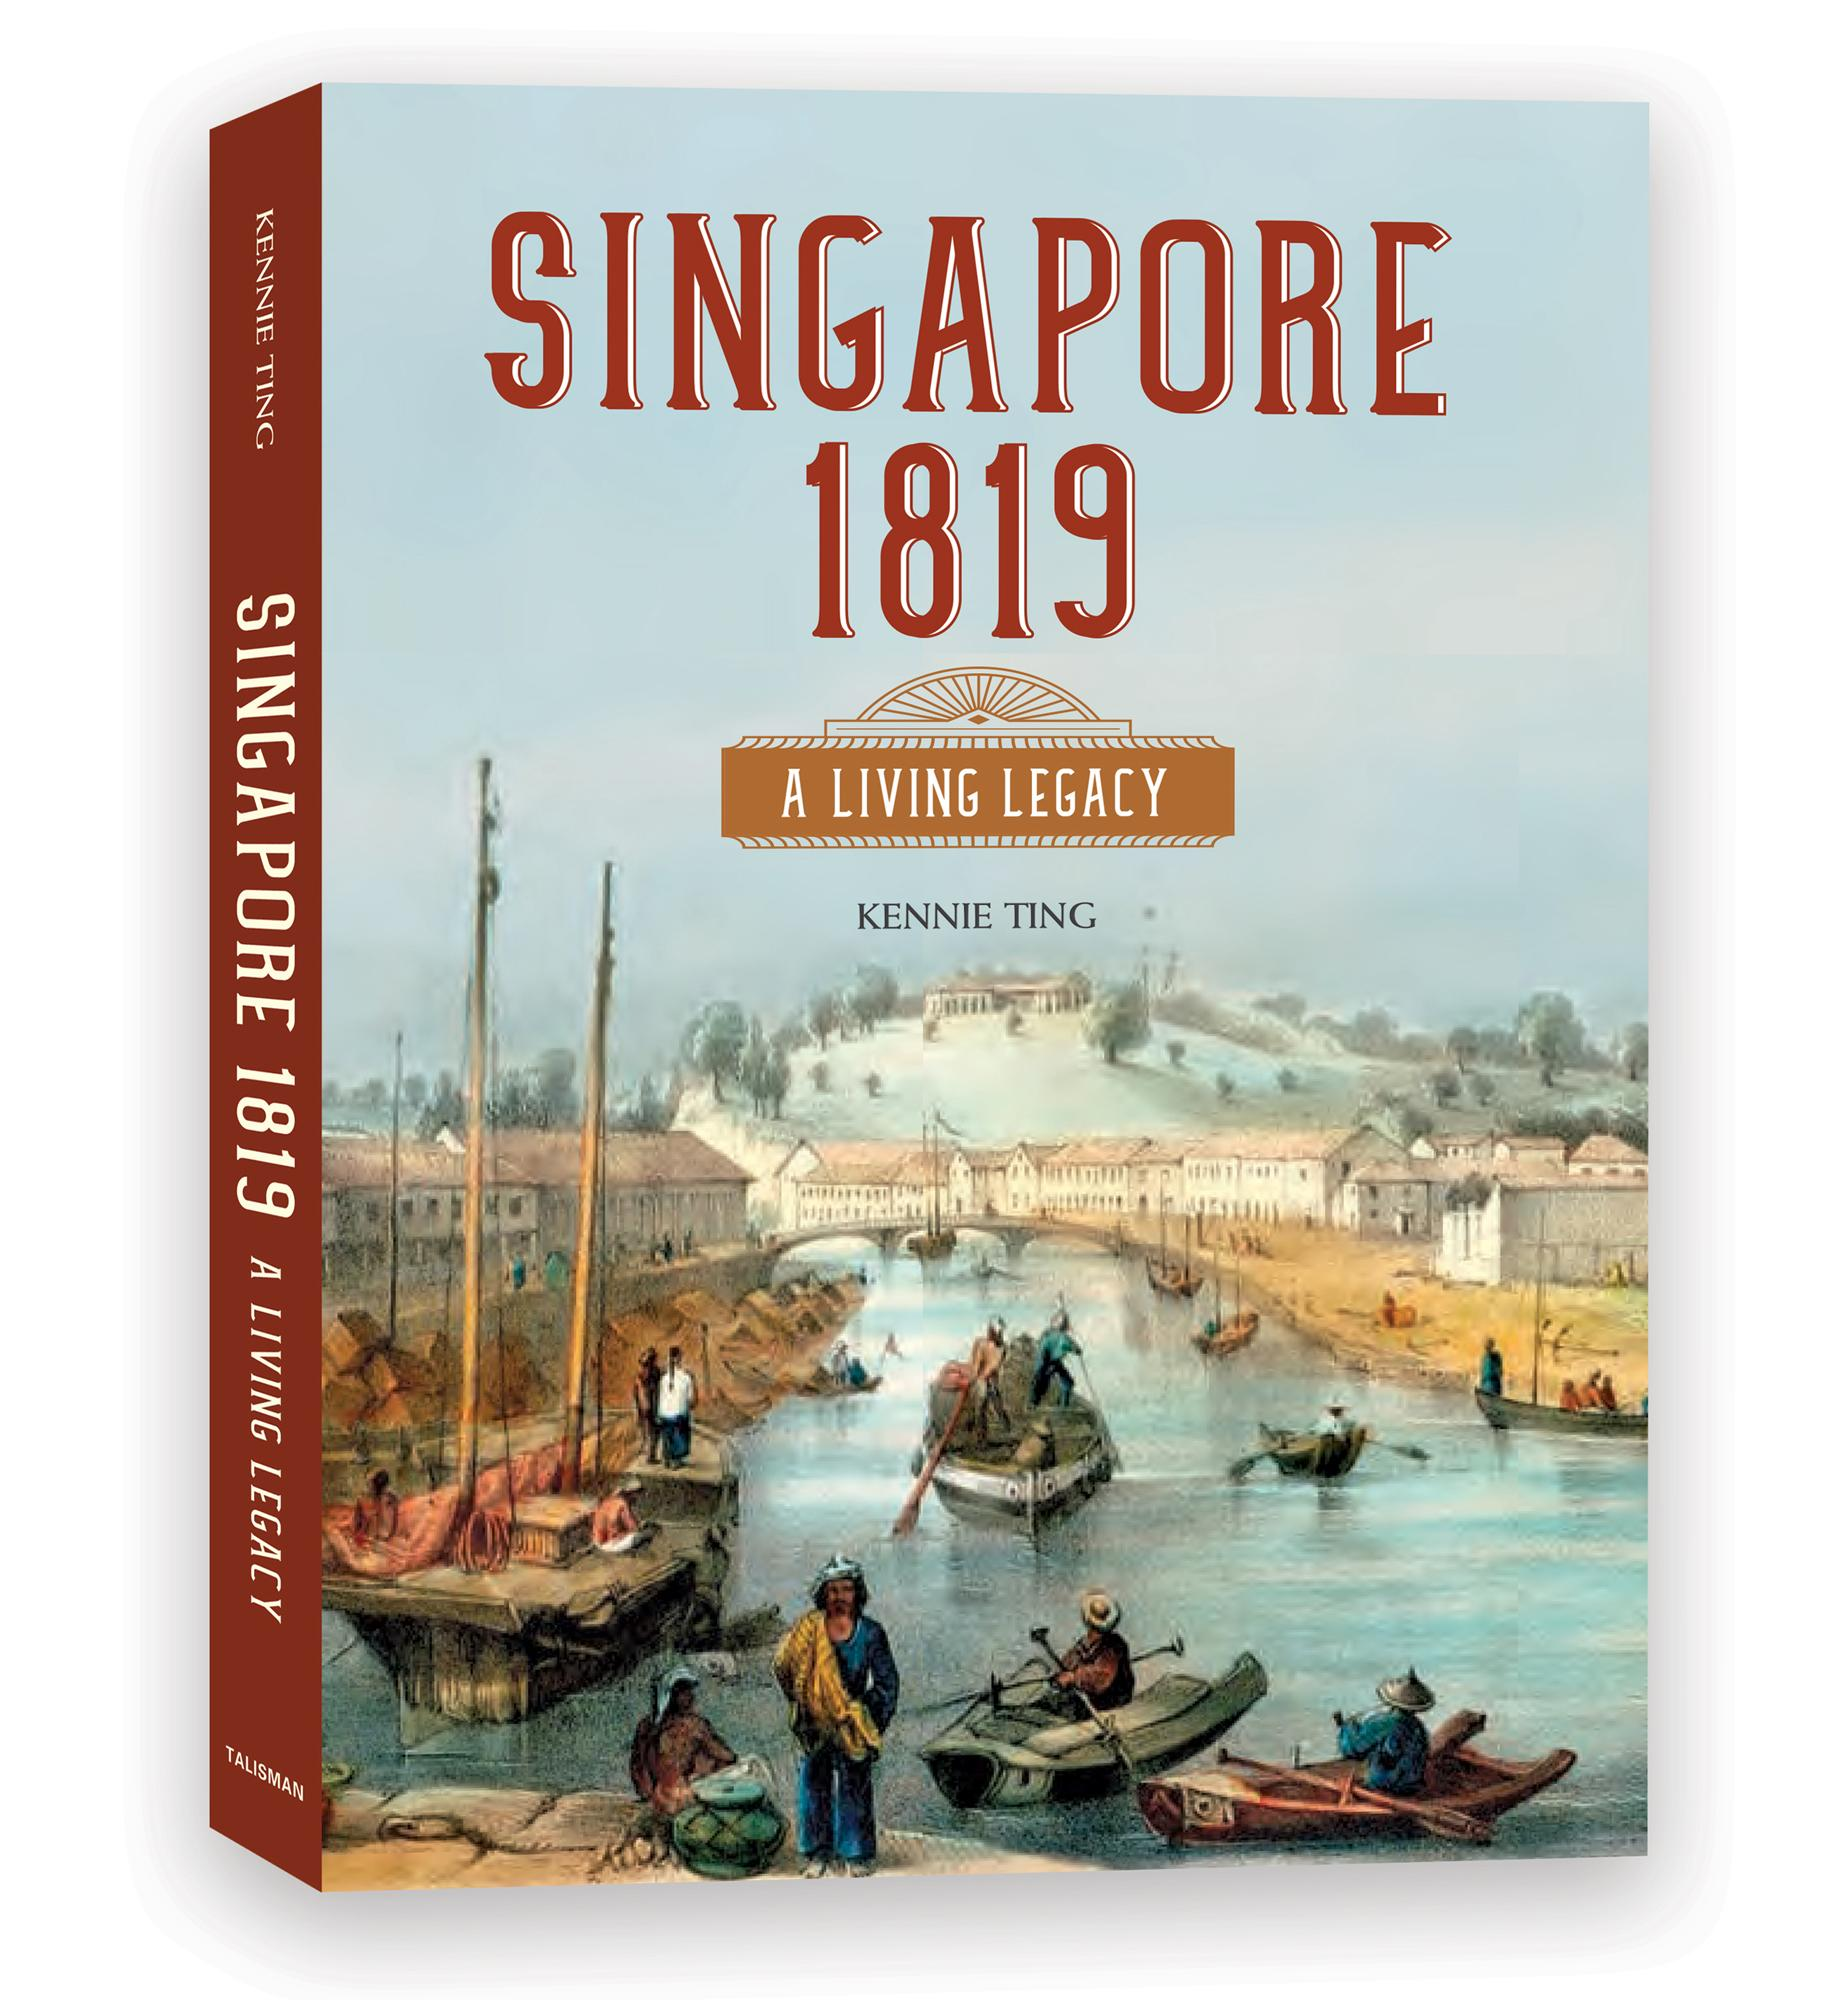 Singapore 1819: A Living Legacy